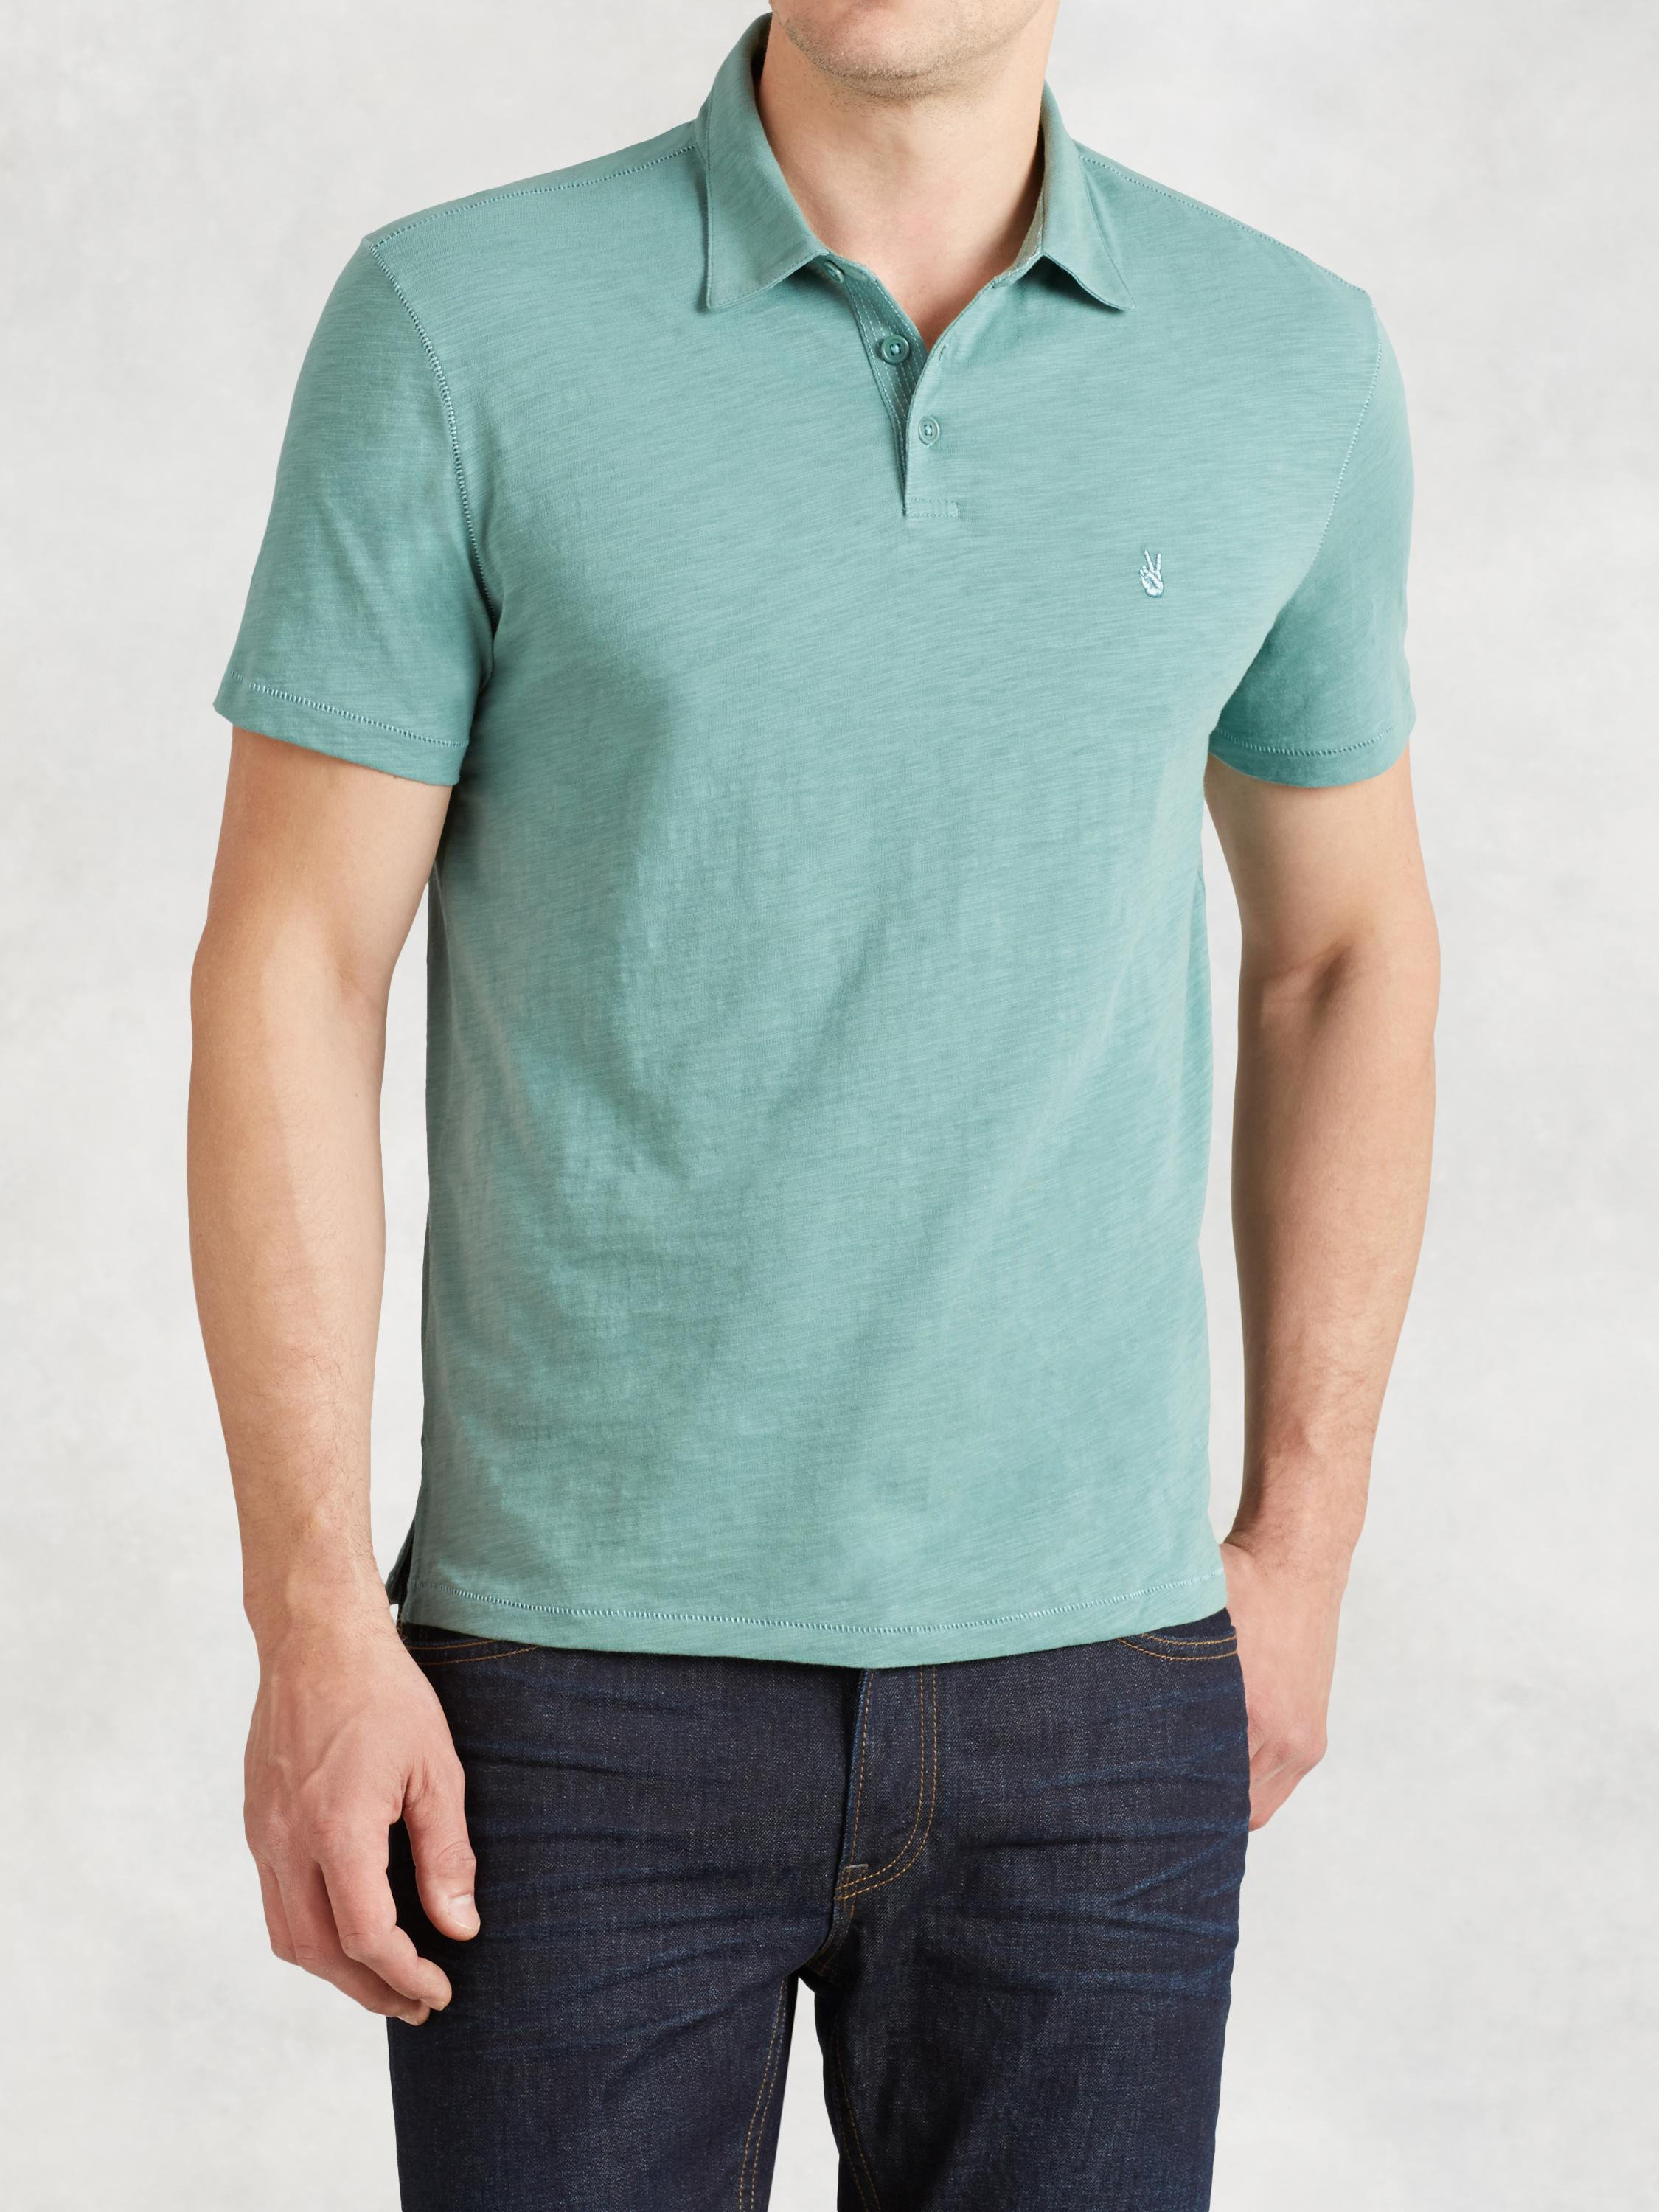 Soft Collar Peace Polo